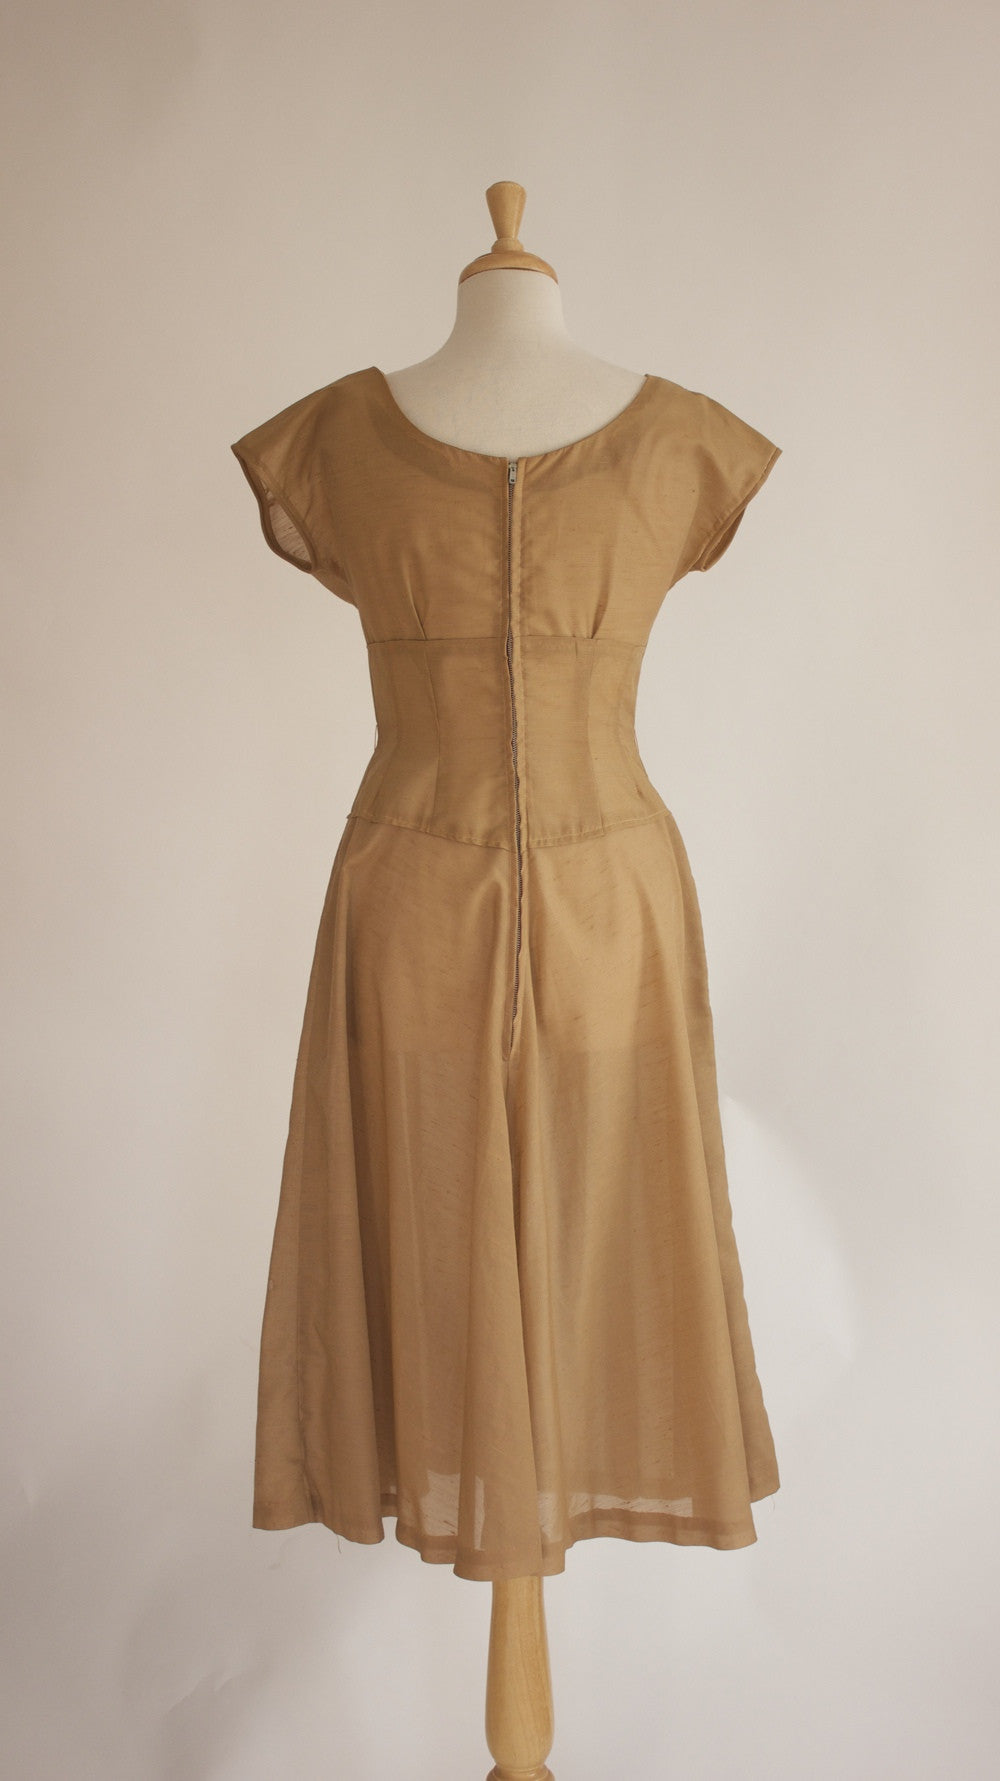 50s Sheer Rockabilly Dress